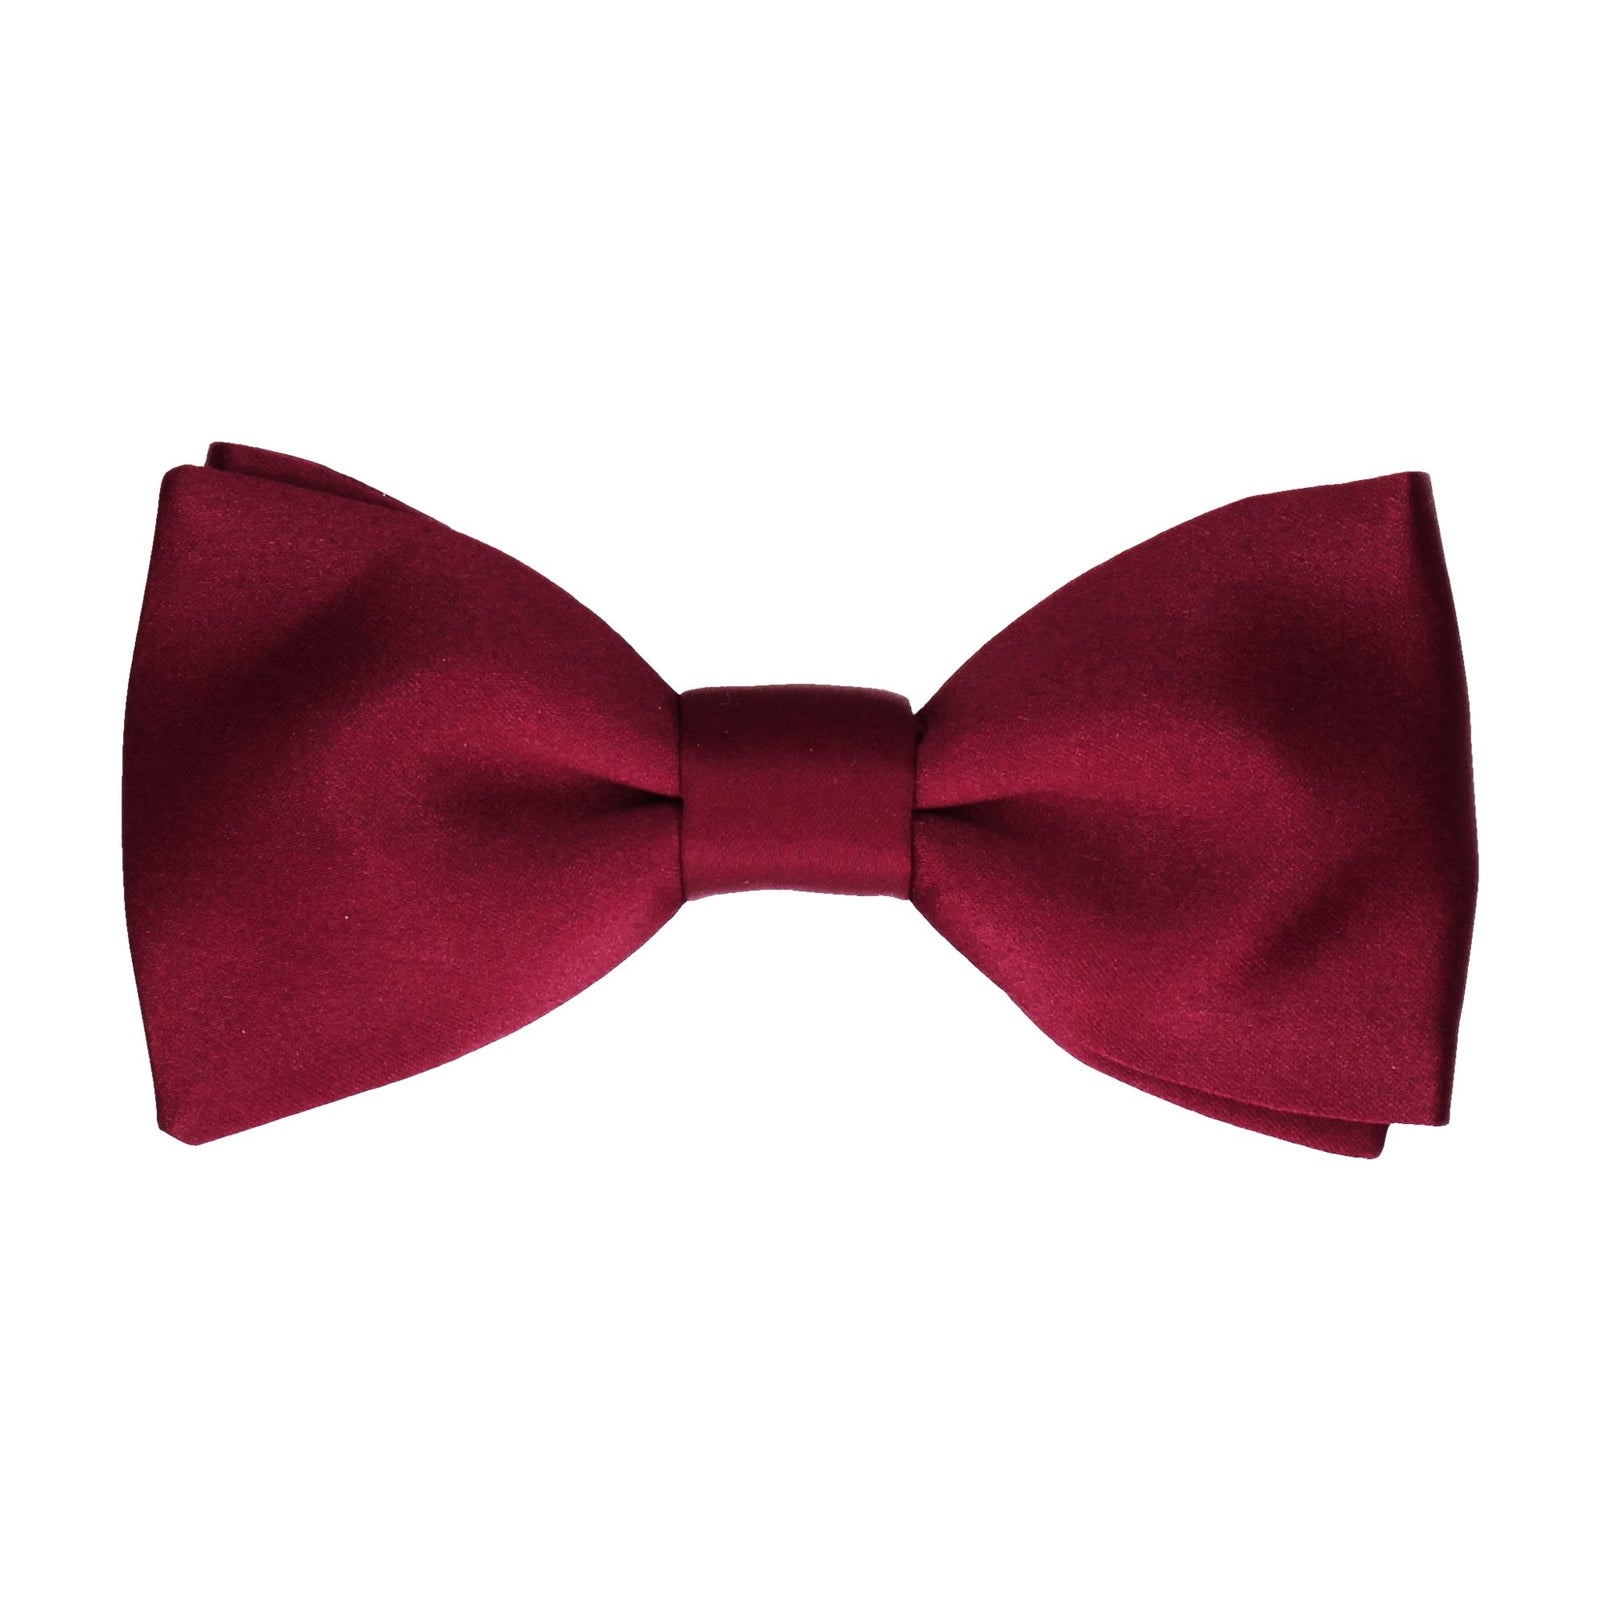 Burgundy Red Wine Plain Solid Satin Bow Tie